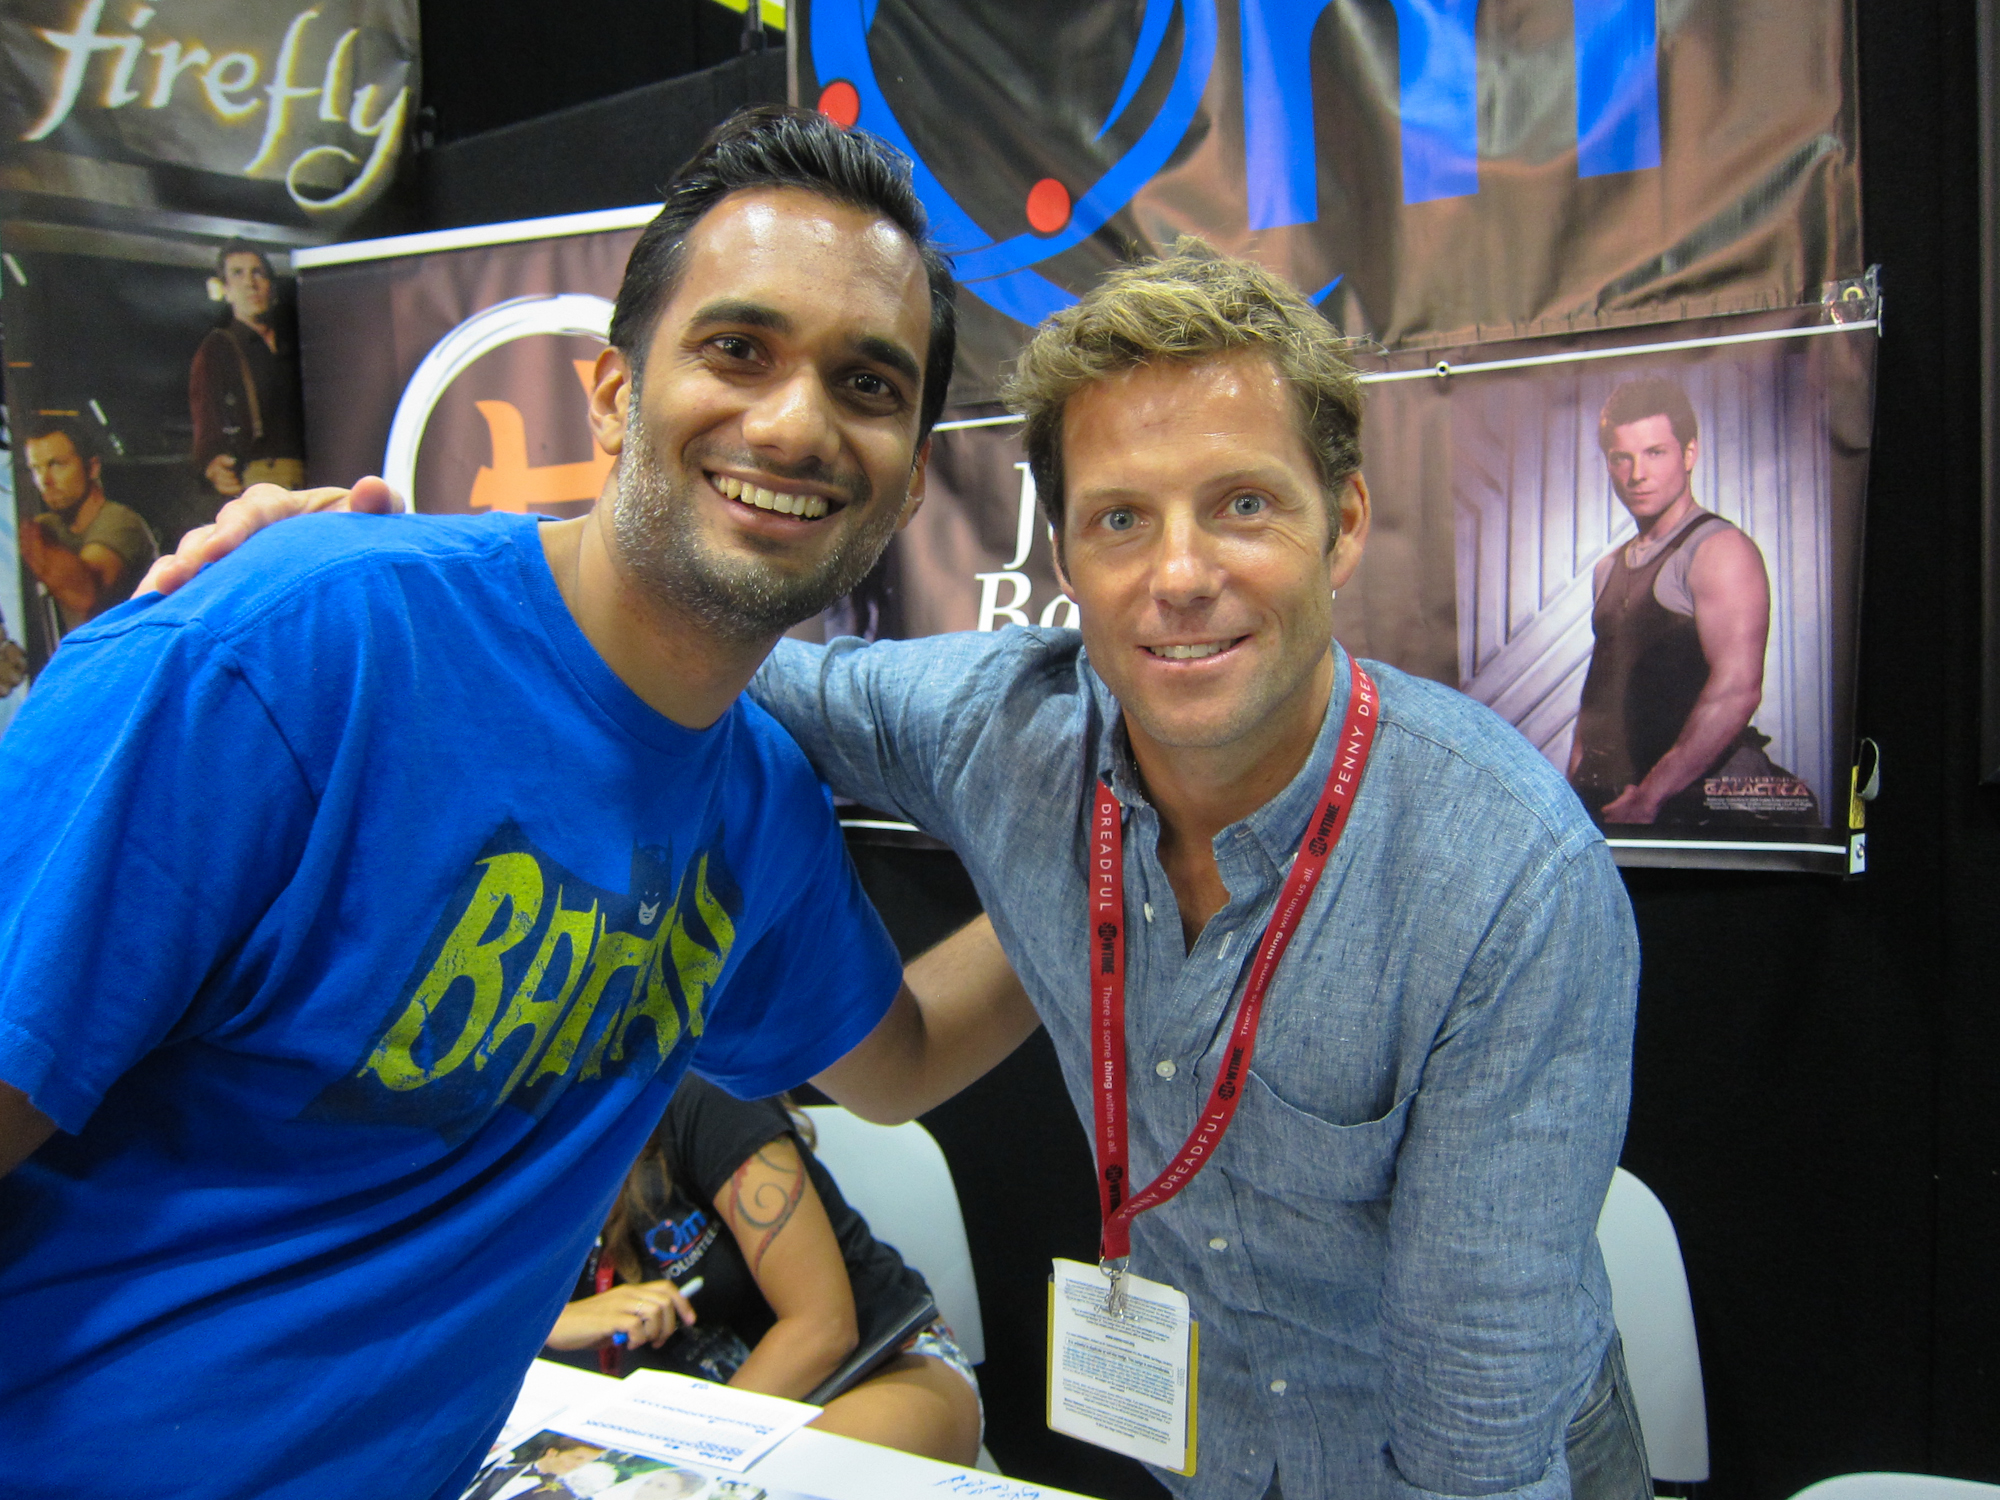 Jamie Bamber at San Diego Comic Con 2014